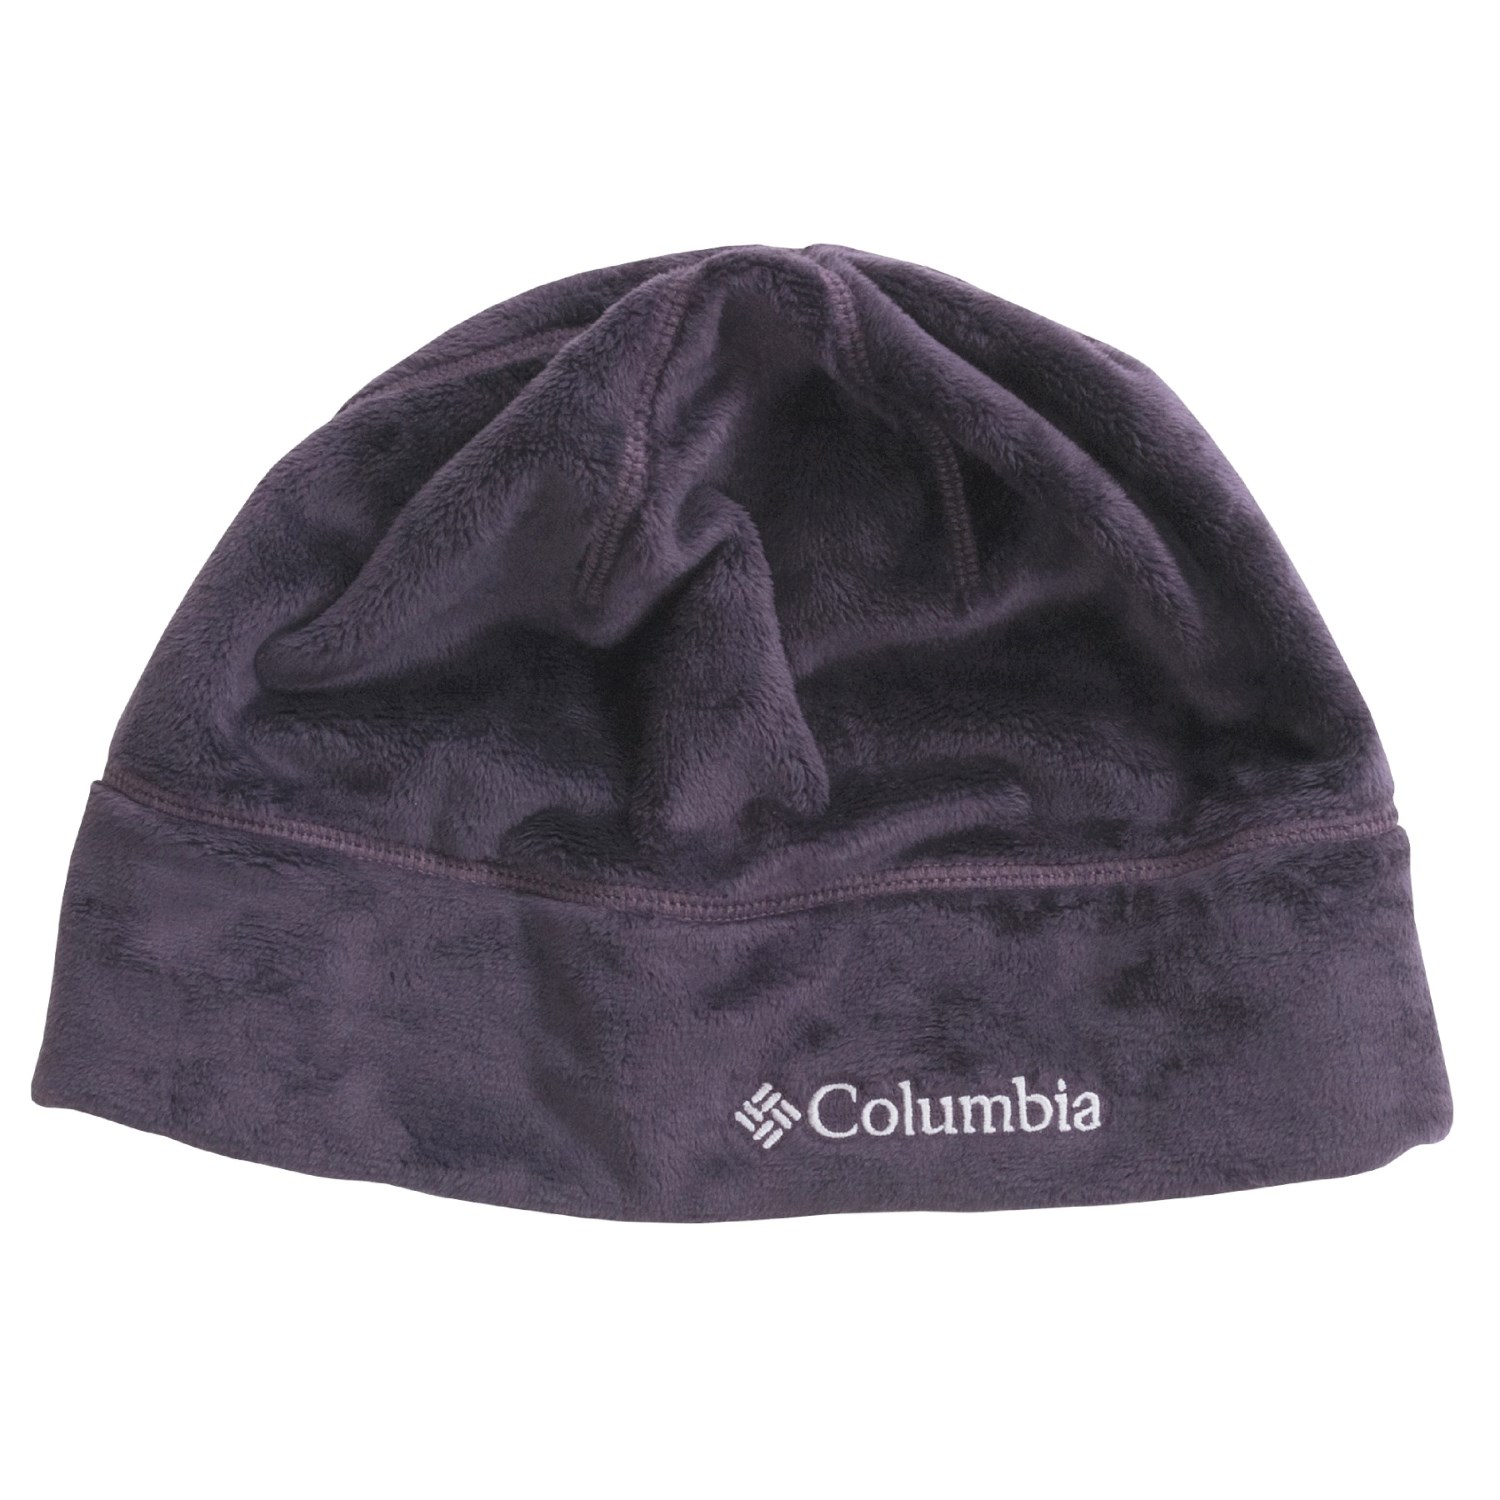 columbia sportswear pearl beanie hat for 2729p